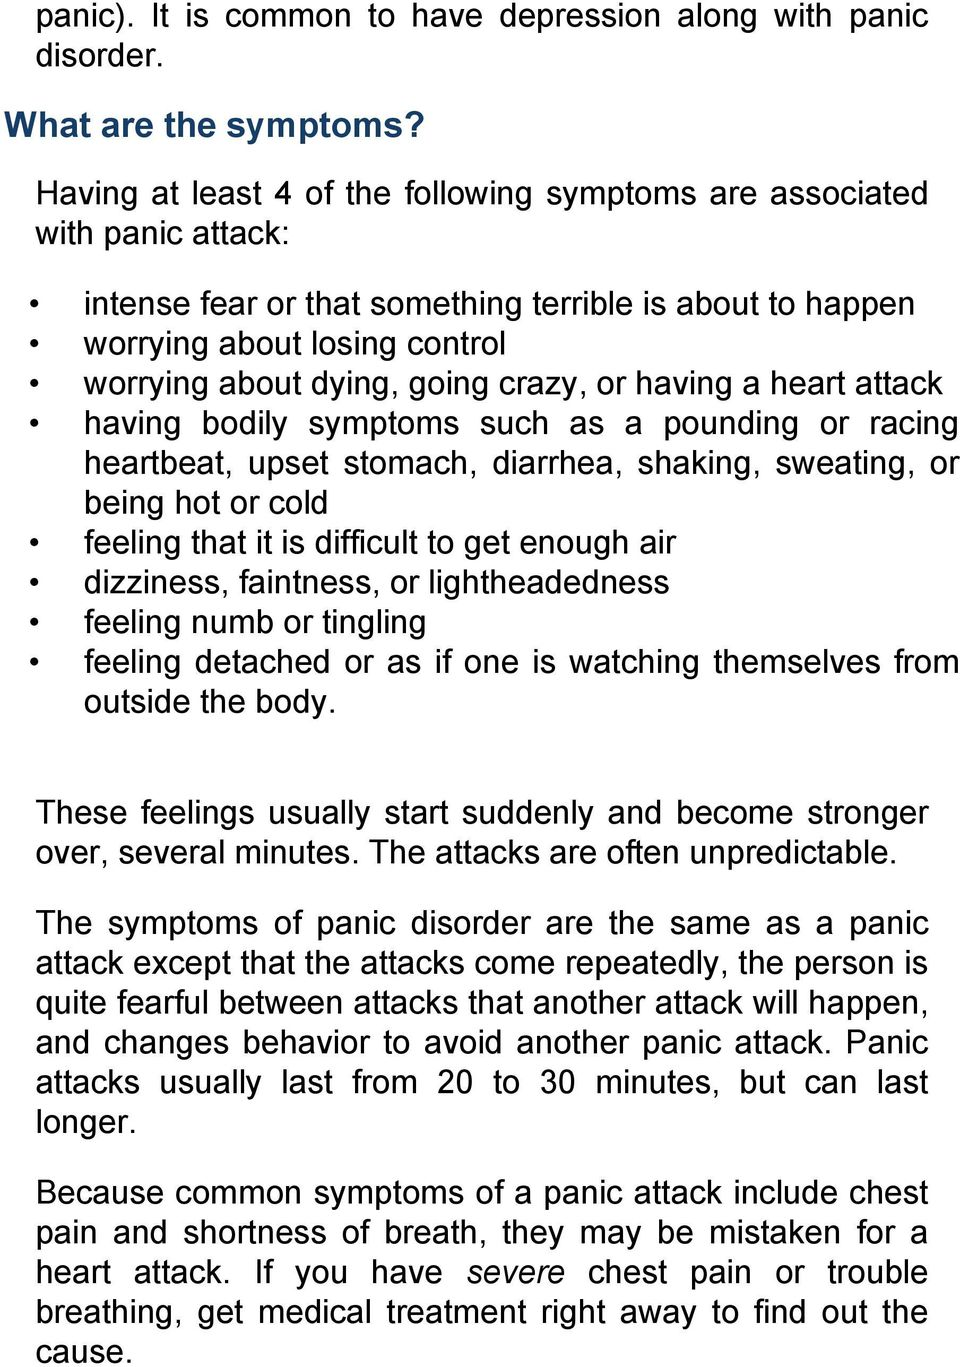 crazy, or having a heart attack having bodily symptoms such as a pounding or racing heartbeat, upset stomach, diarrhea, shaking, sweating, or being hot or cold feeling that it is difficult to get